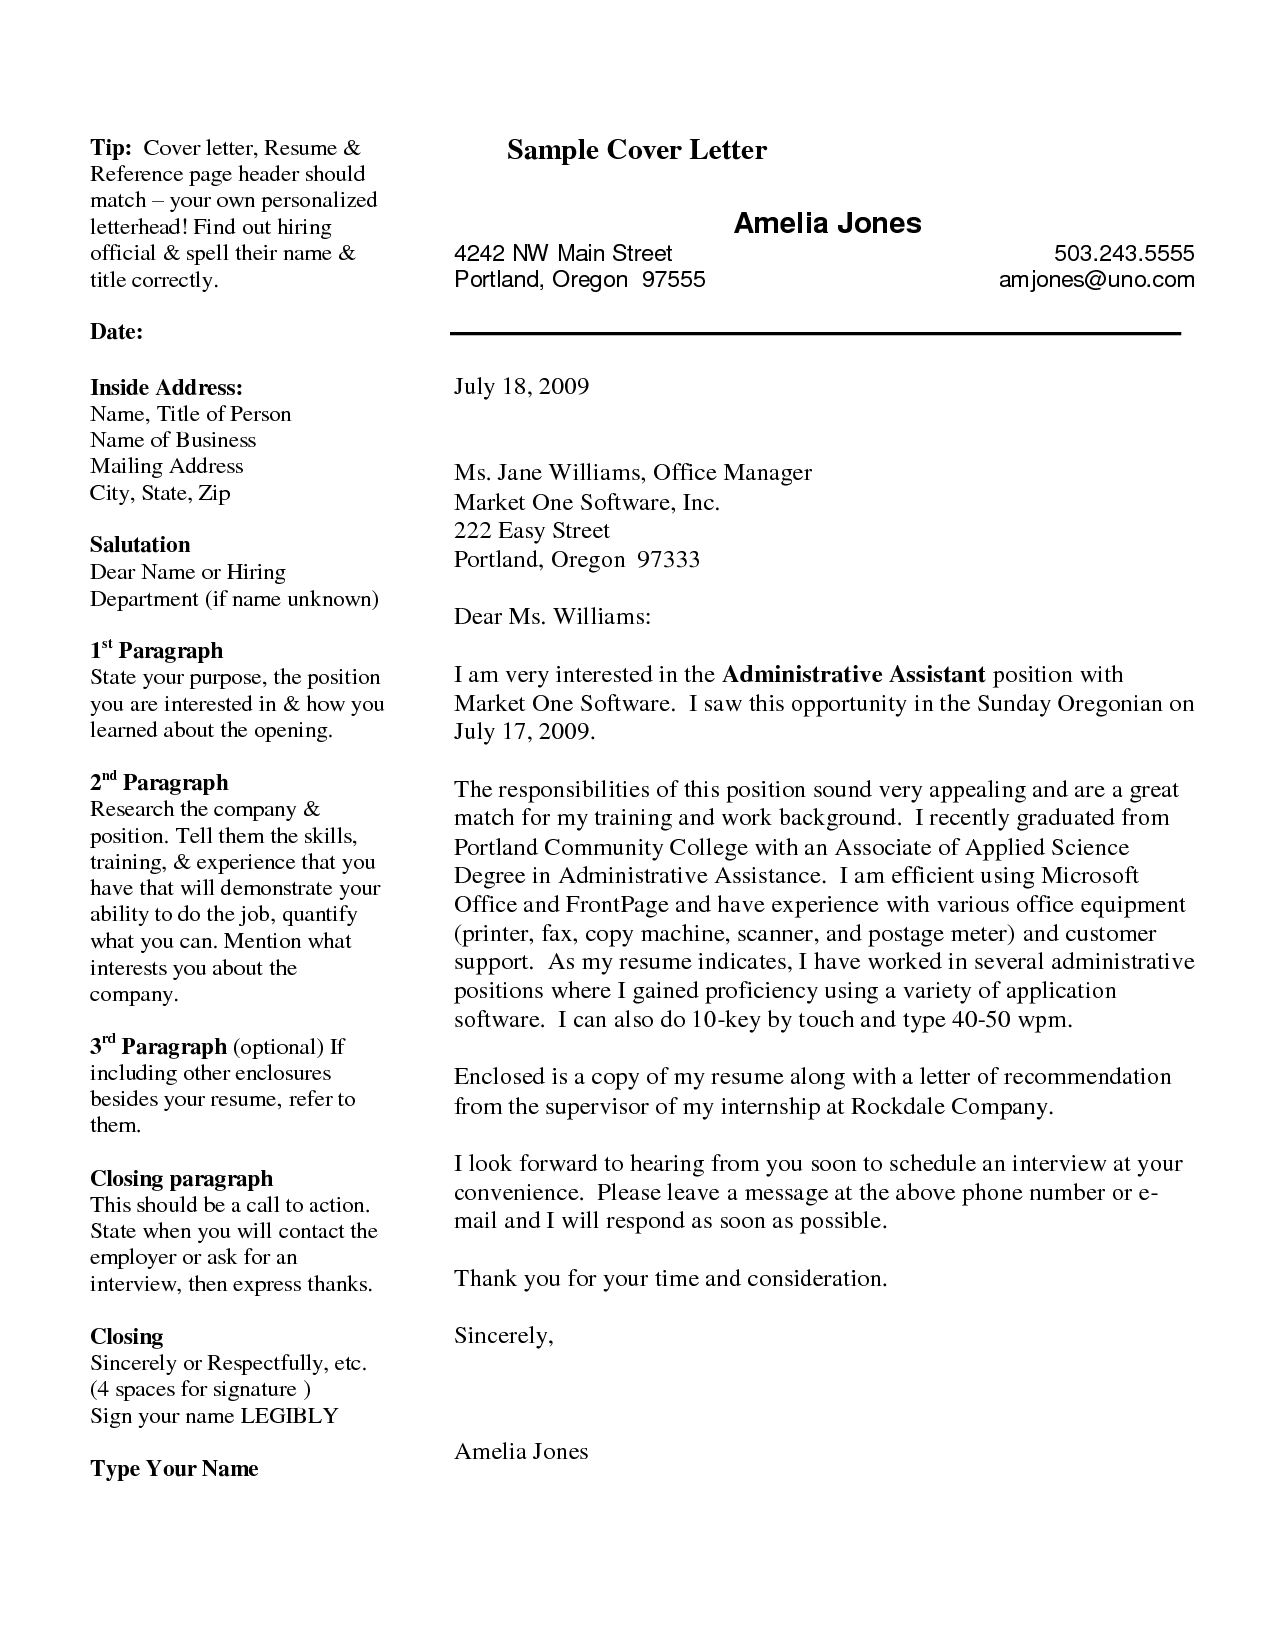 Professional Resume Cover Letter SamplesProfessional Resume Cover Letter  Samples Professional Resume Cover Letter Samples,how  Difference Between Resume And Cover Letter